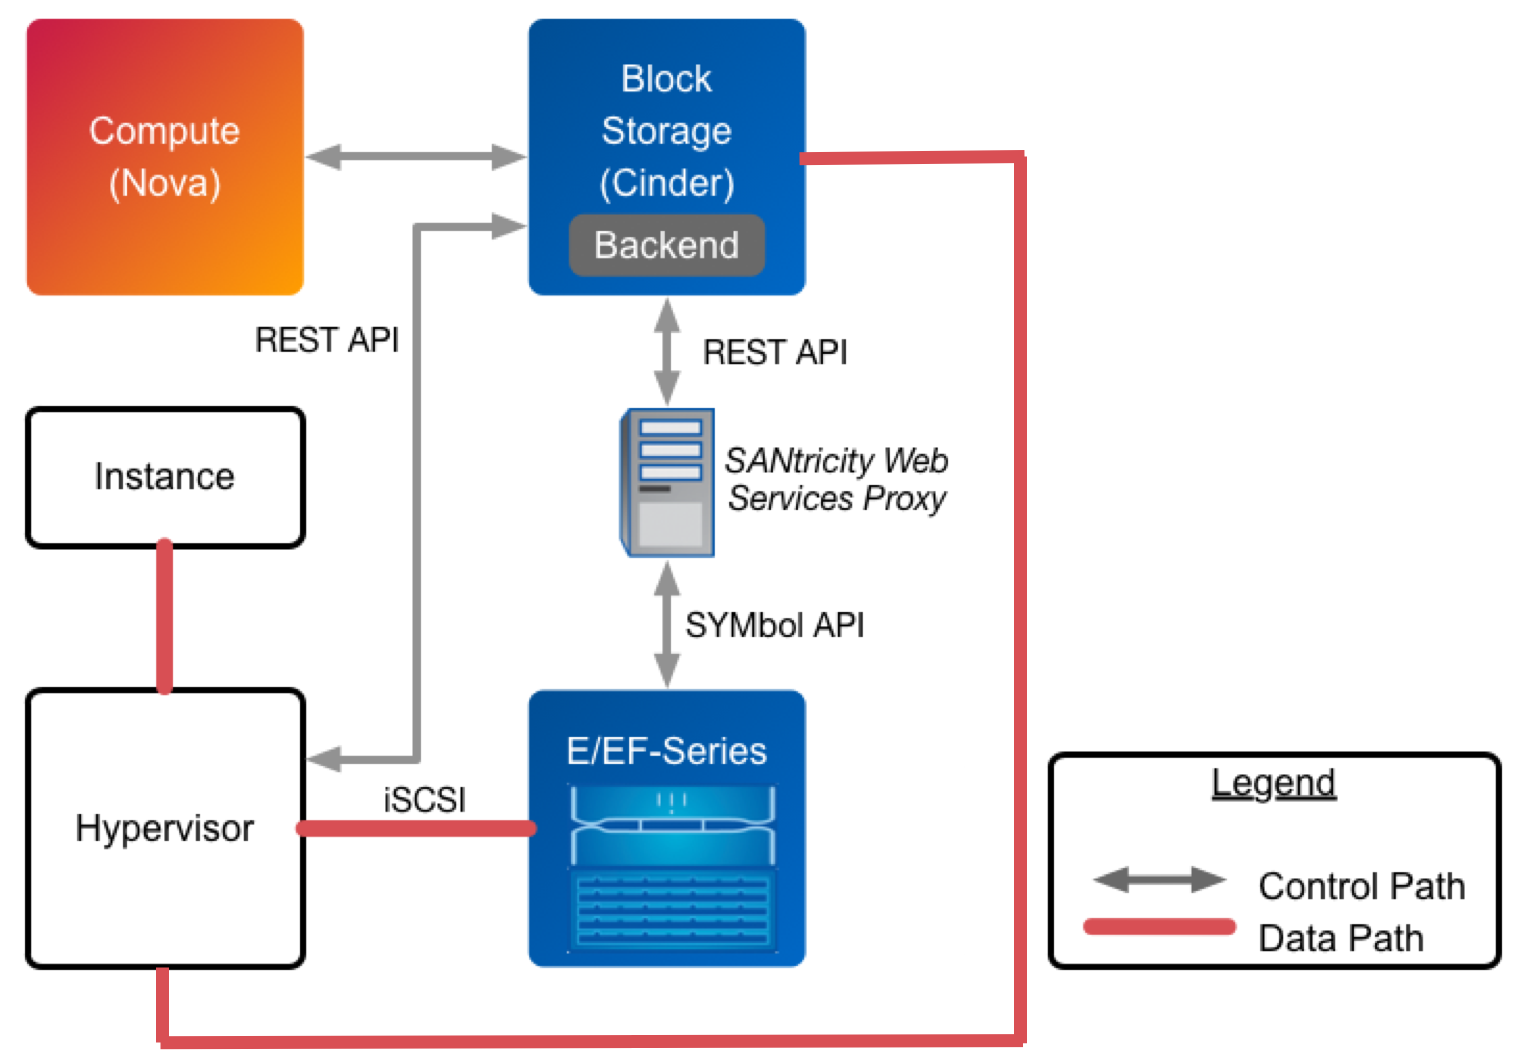 cinder_eseries_deployment_topology netapp driver for e series with iscsi openstack deployment and